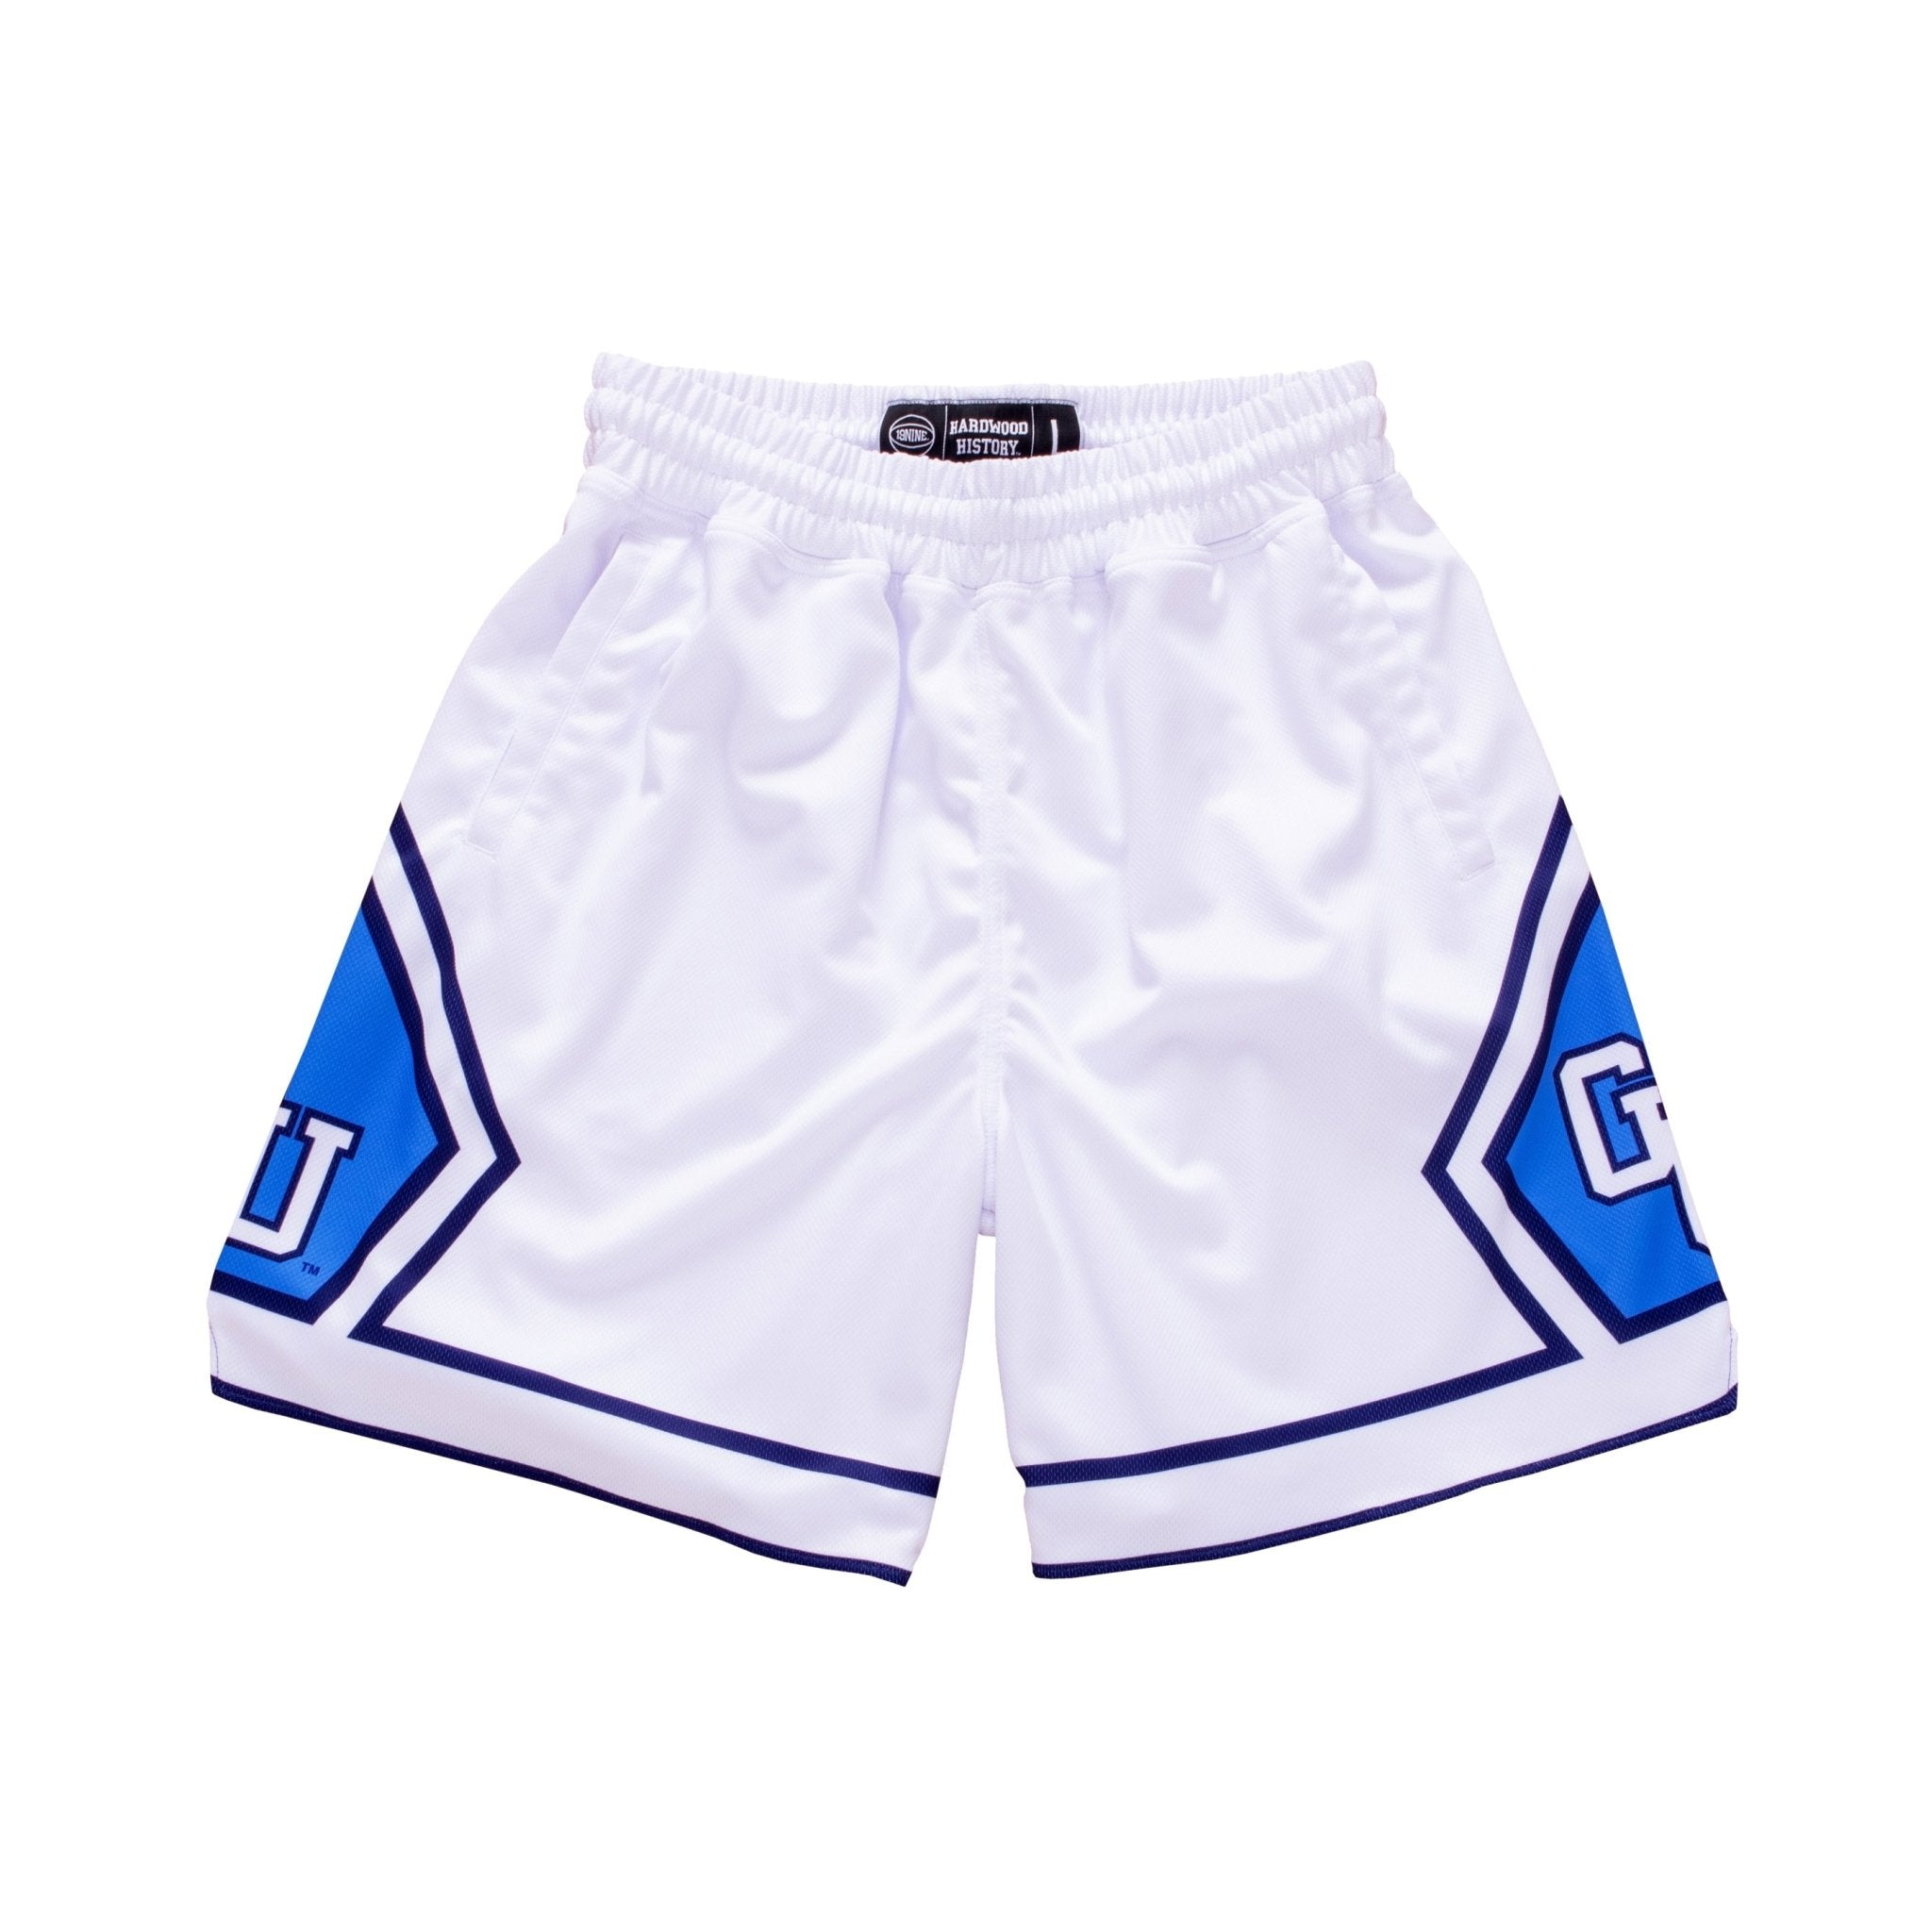 Georgetown Hoyas 1981-1982 Retro Shorts - SLAM